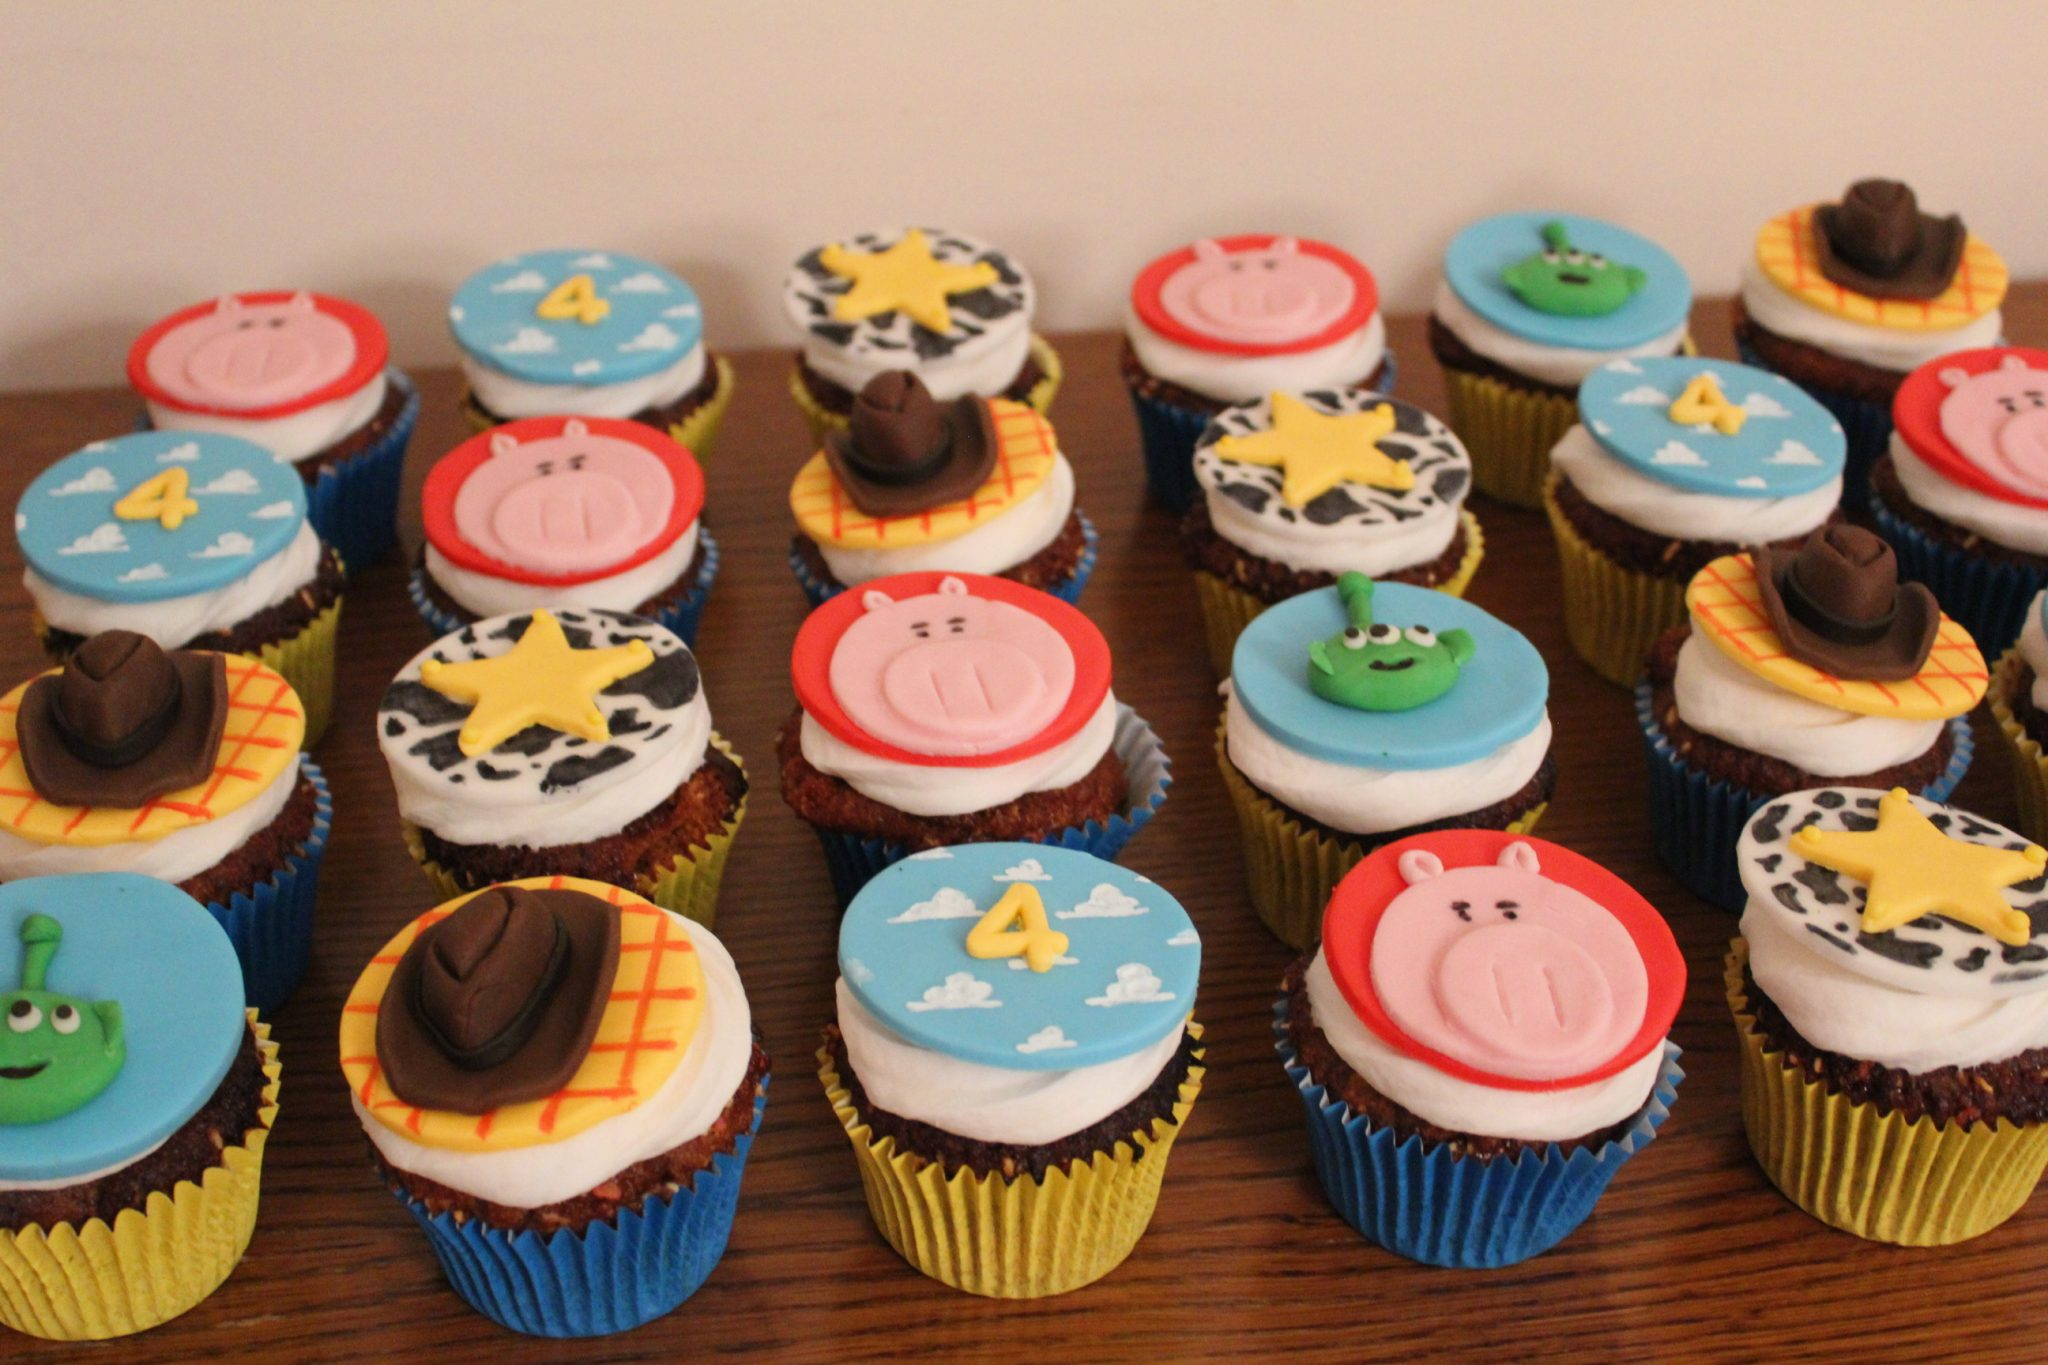 Toy Story gluten, wheat & dairy free vanilla cupcakes with coconut cream icing